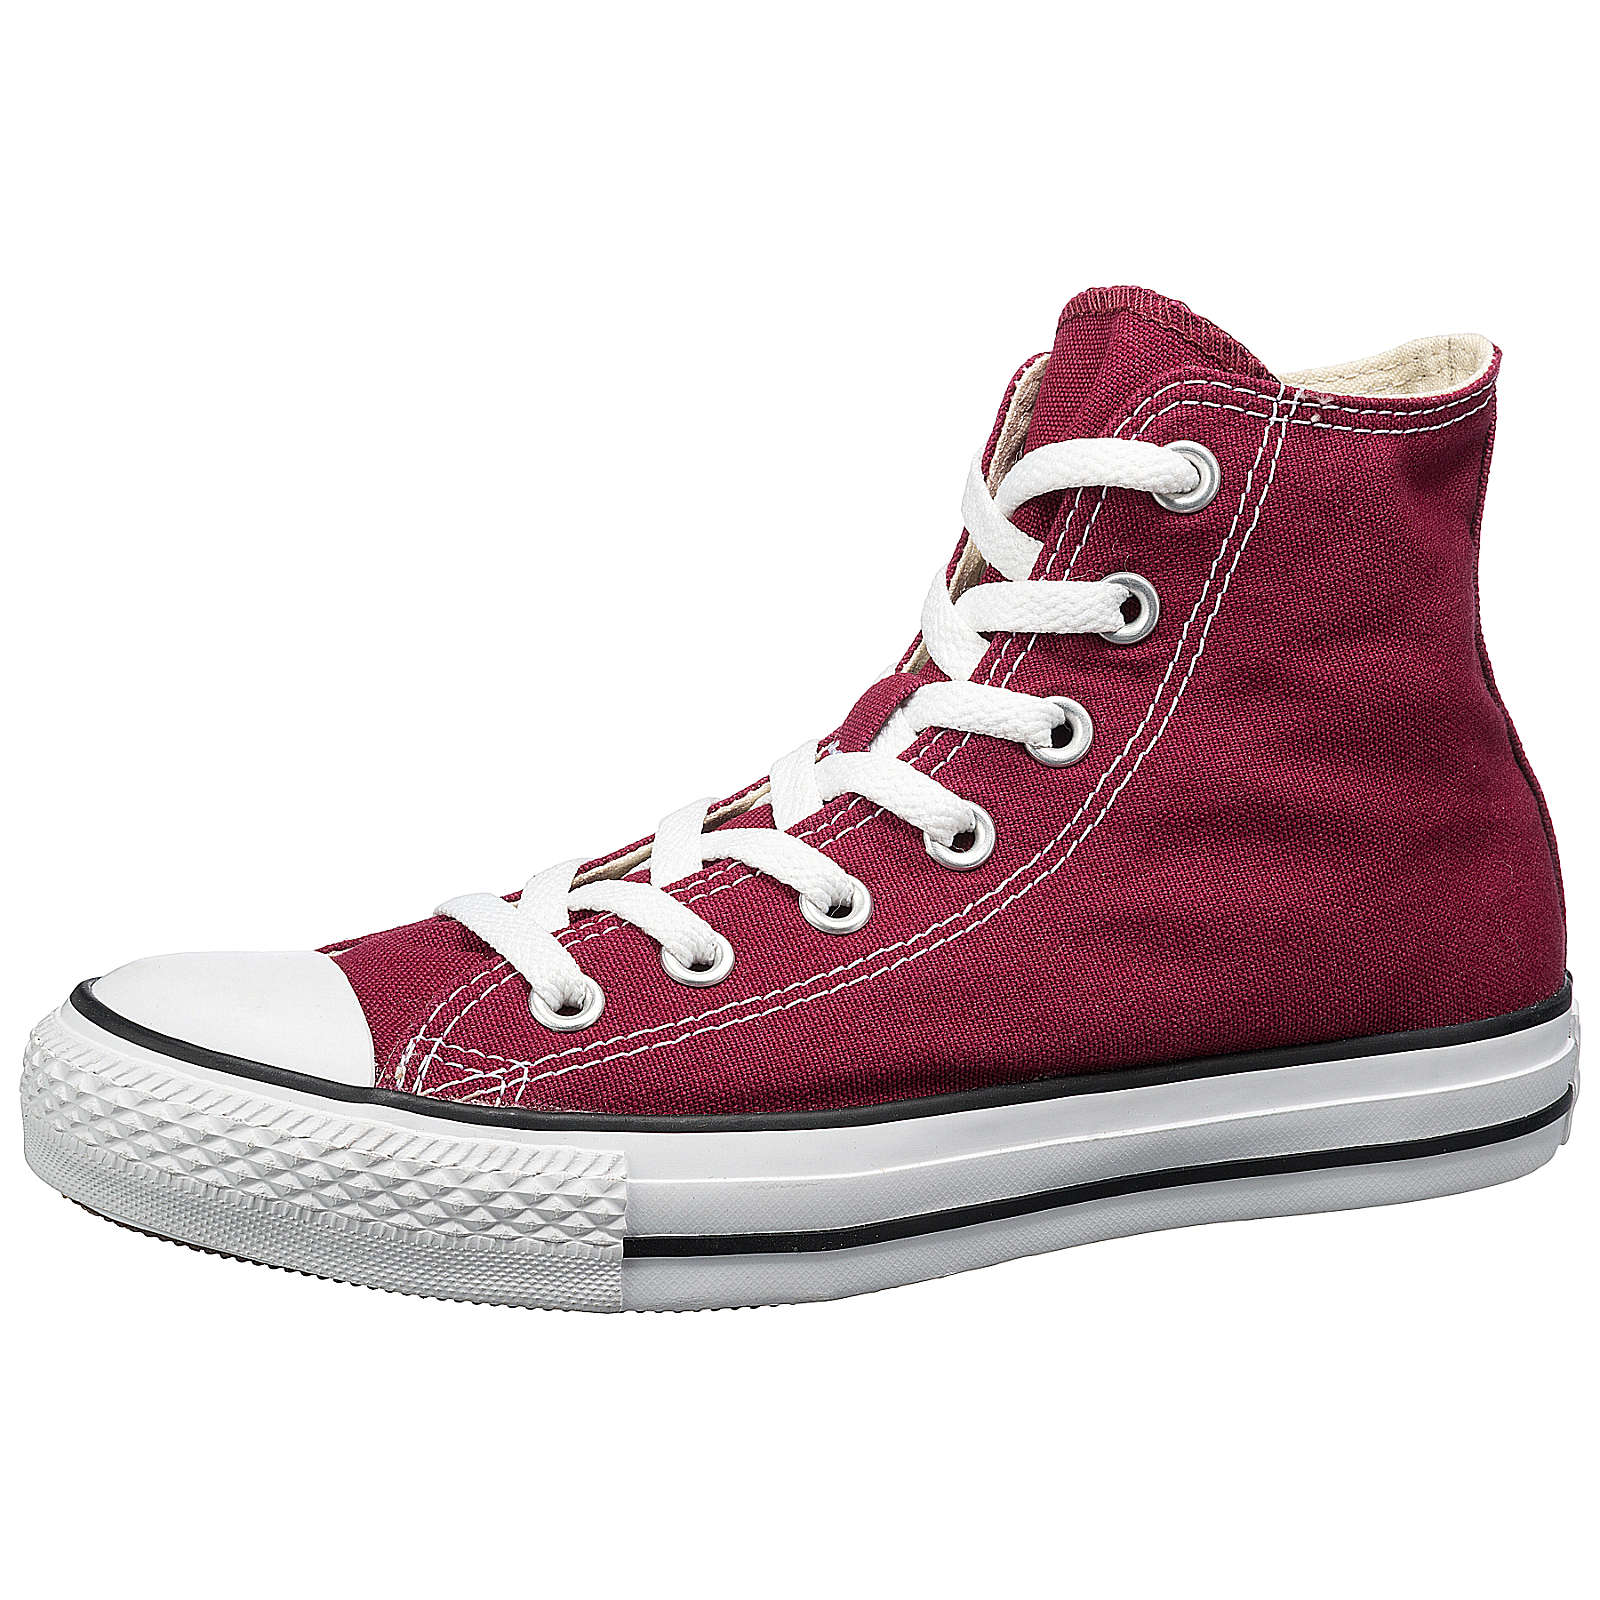 CONVERSE All Star Sneakers High dunkelrot Gr. 40